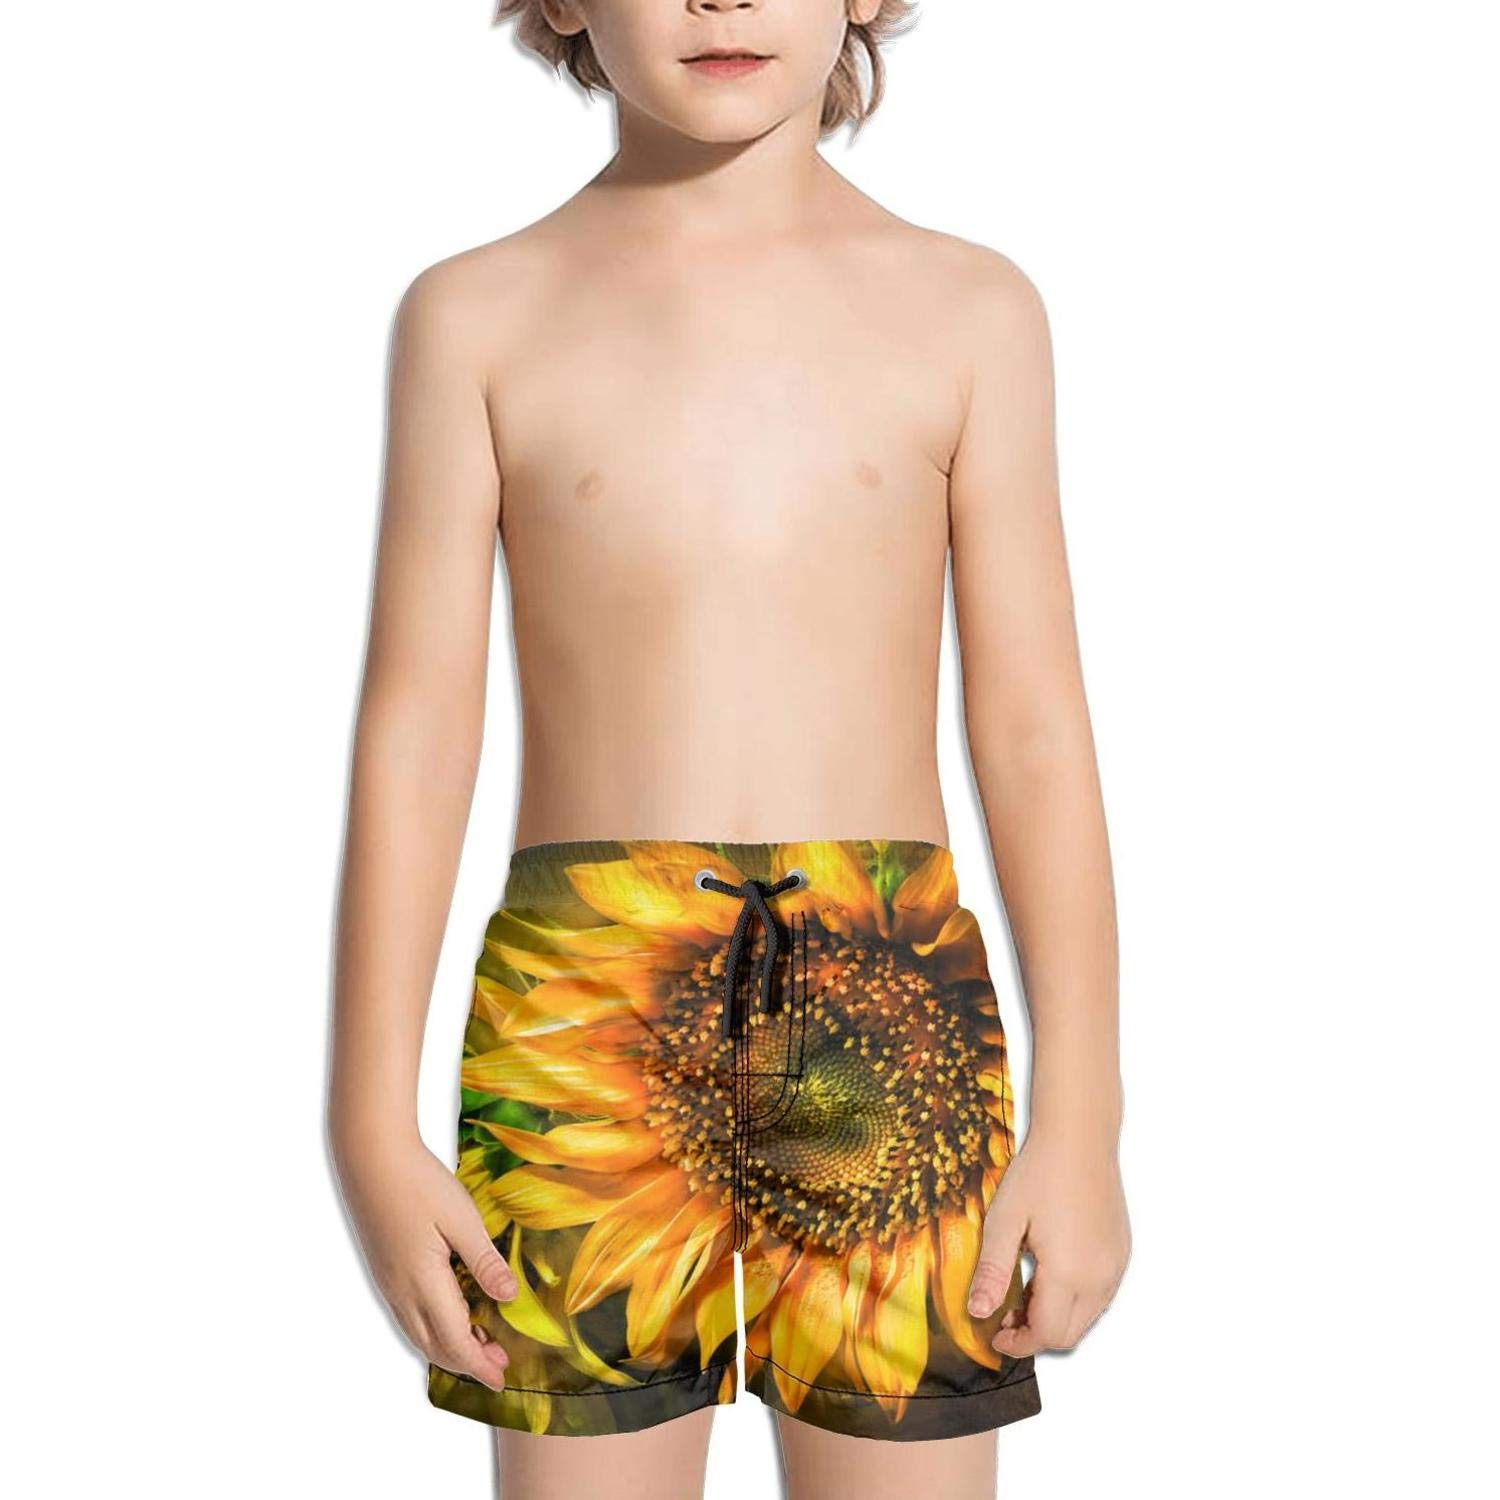 XULANG Kids Boys Girls Dramatic Sunflower Wallpaper Swim Trunks Watersports Street Swimwear Fashion Boardshorts